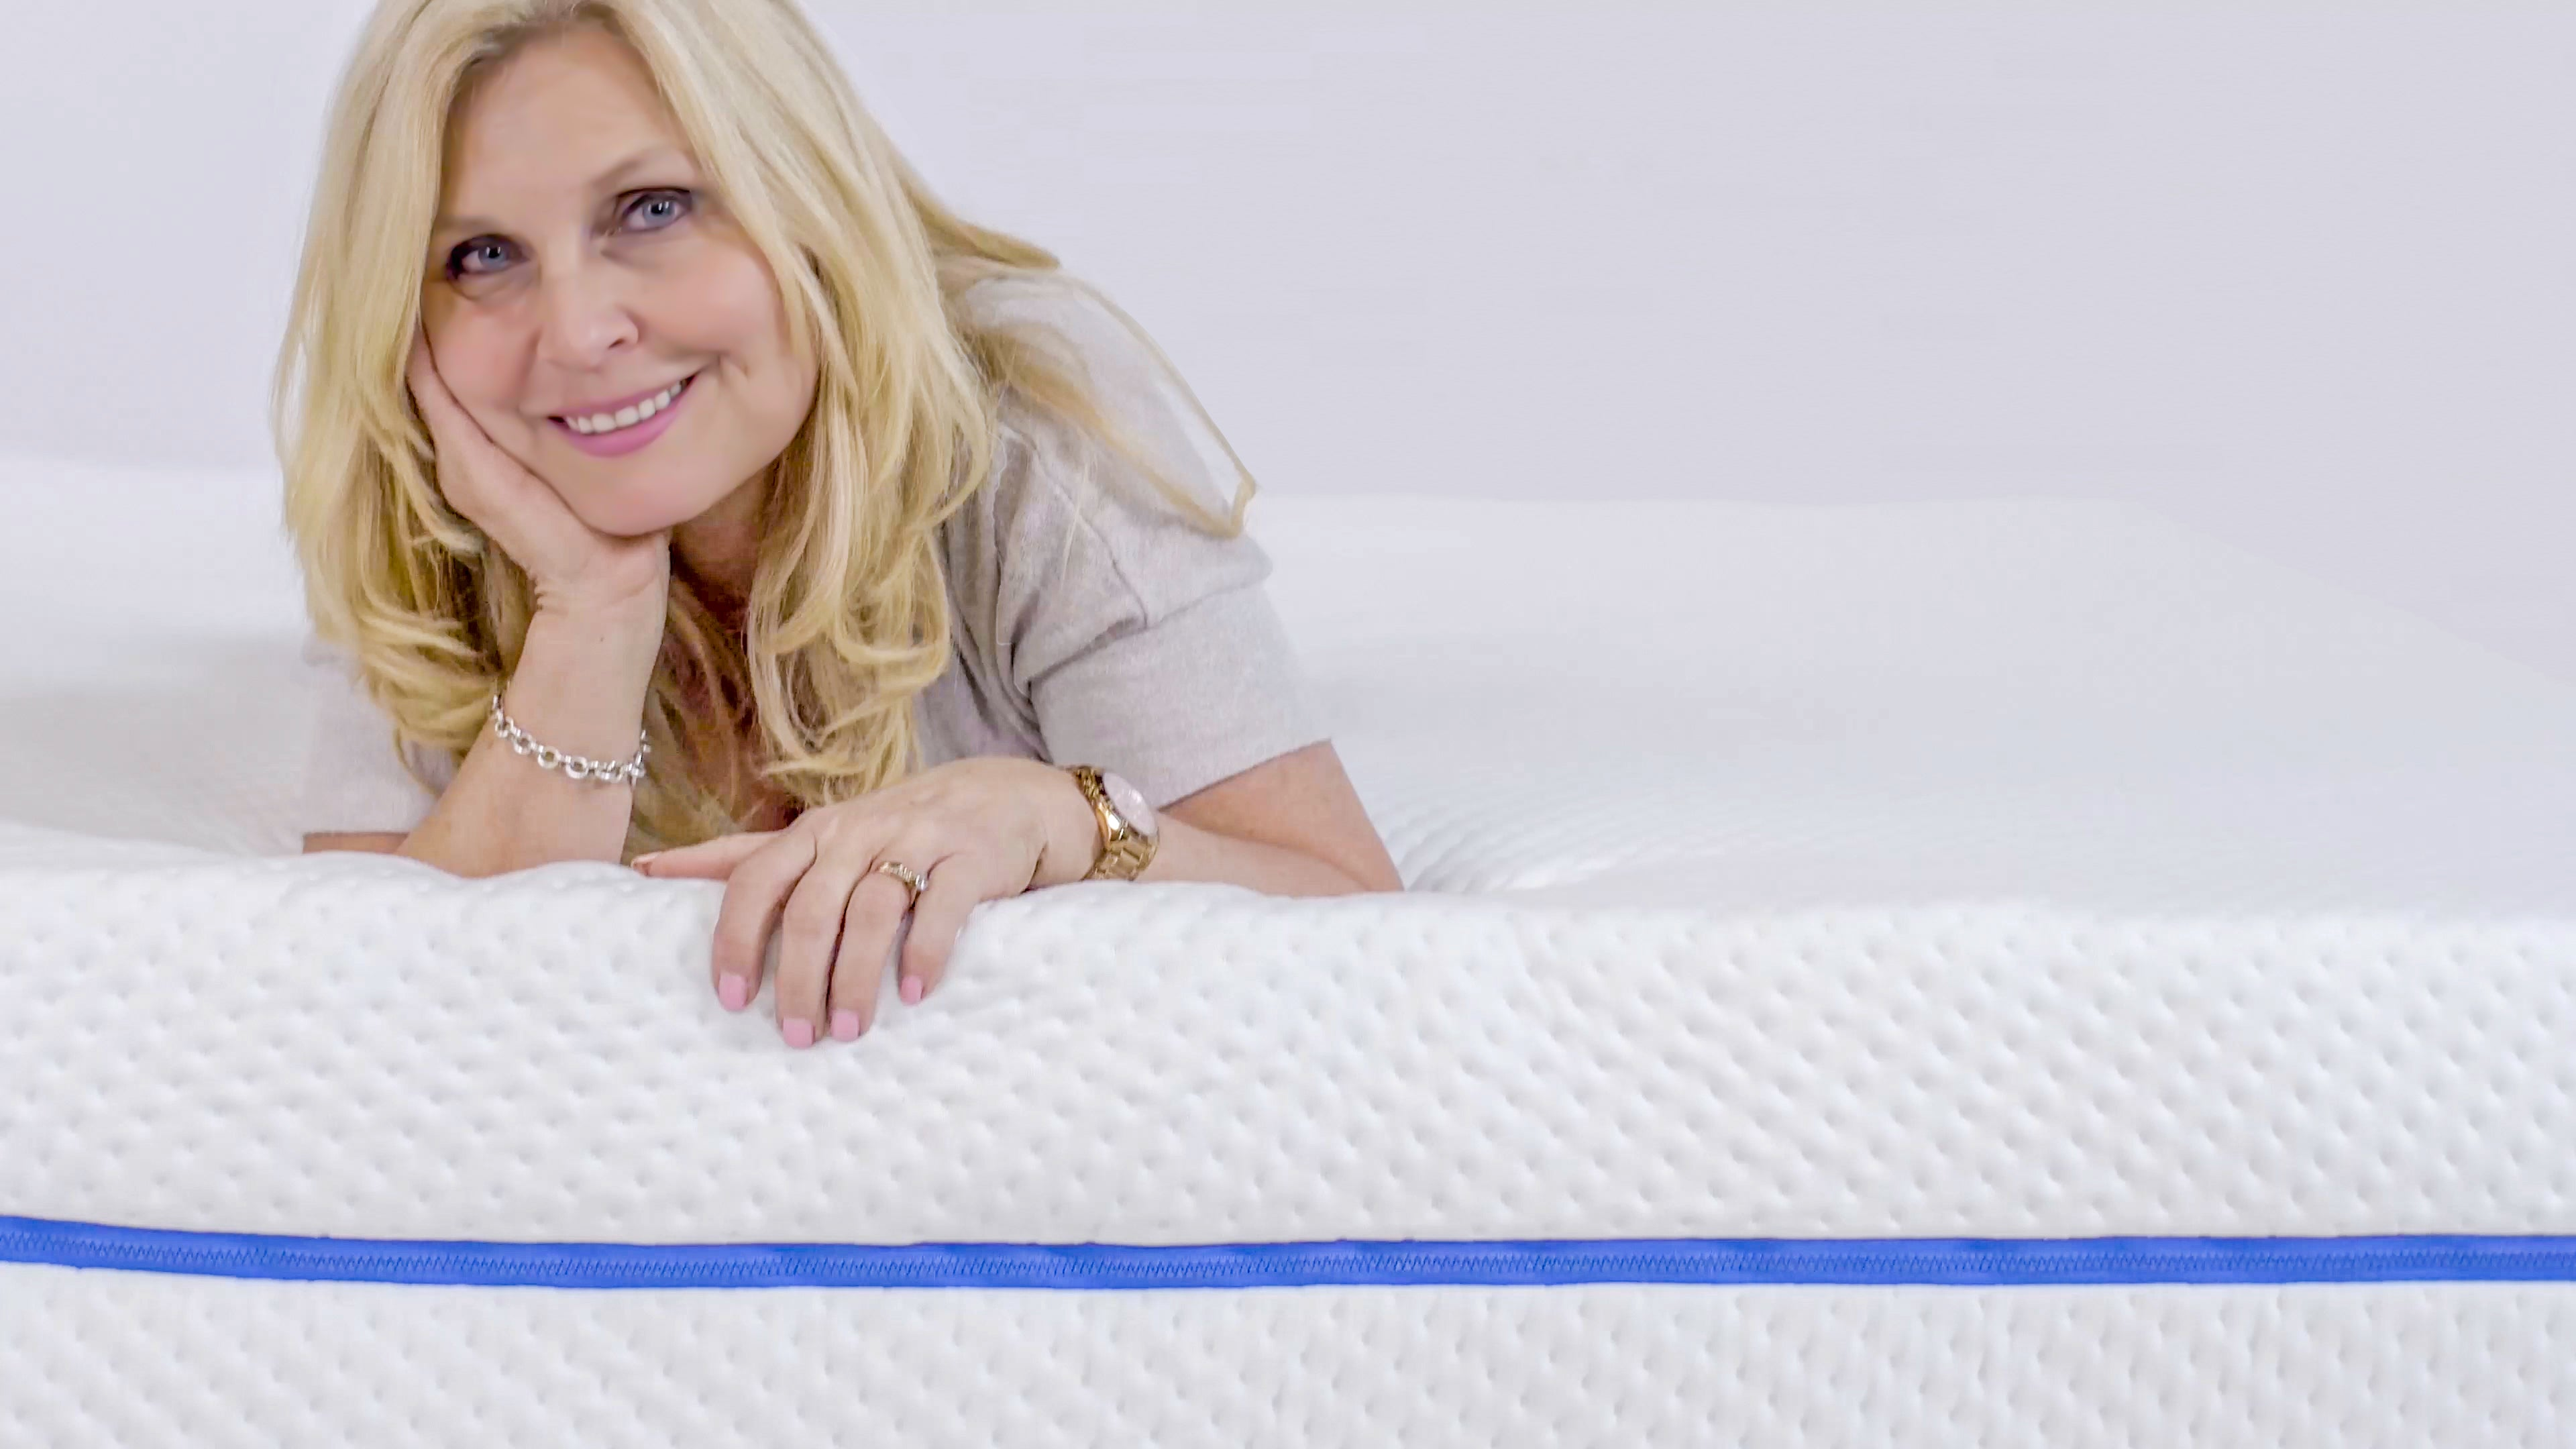 700 tiny mattresses in one